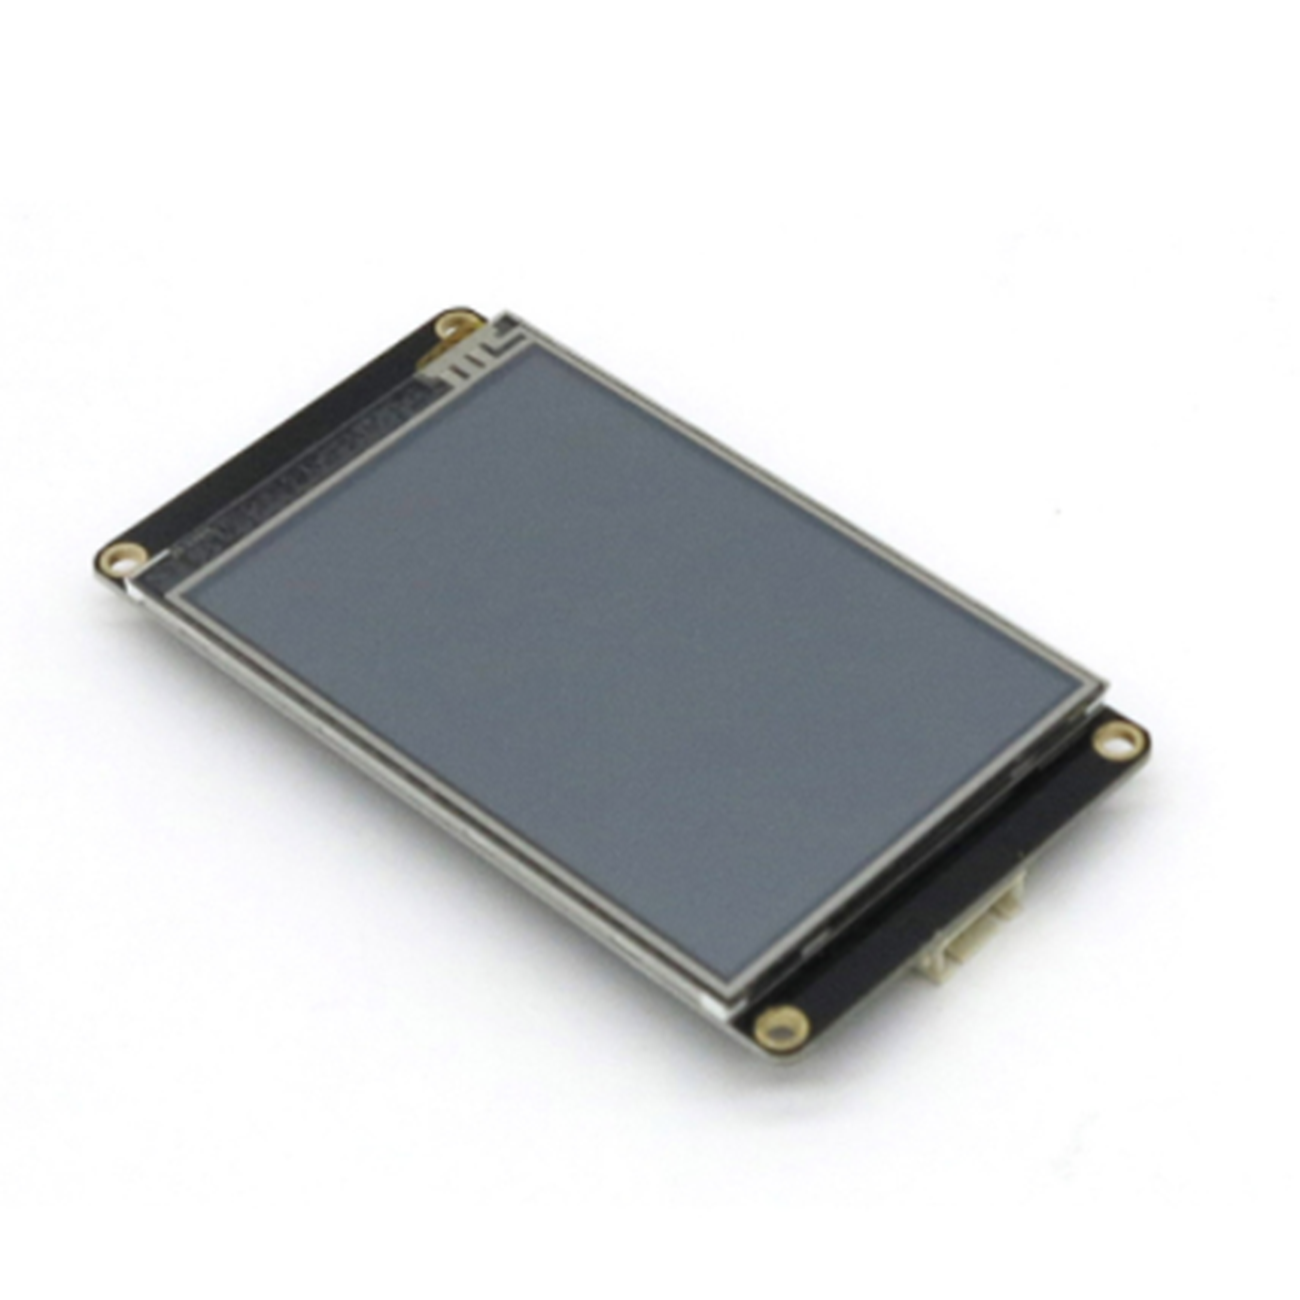 Image 3 - Nextion 4.3 Enhanced HMI Intelligent Smart USART UART Serial Touch TFT LCD Module Display Panel For Raspberry Pi Kits-in LCD Modules from Electronic Components & Supplies